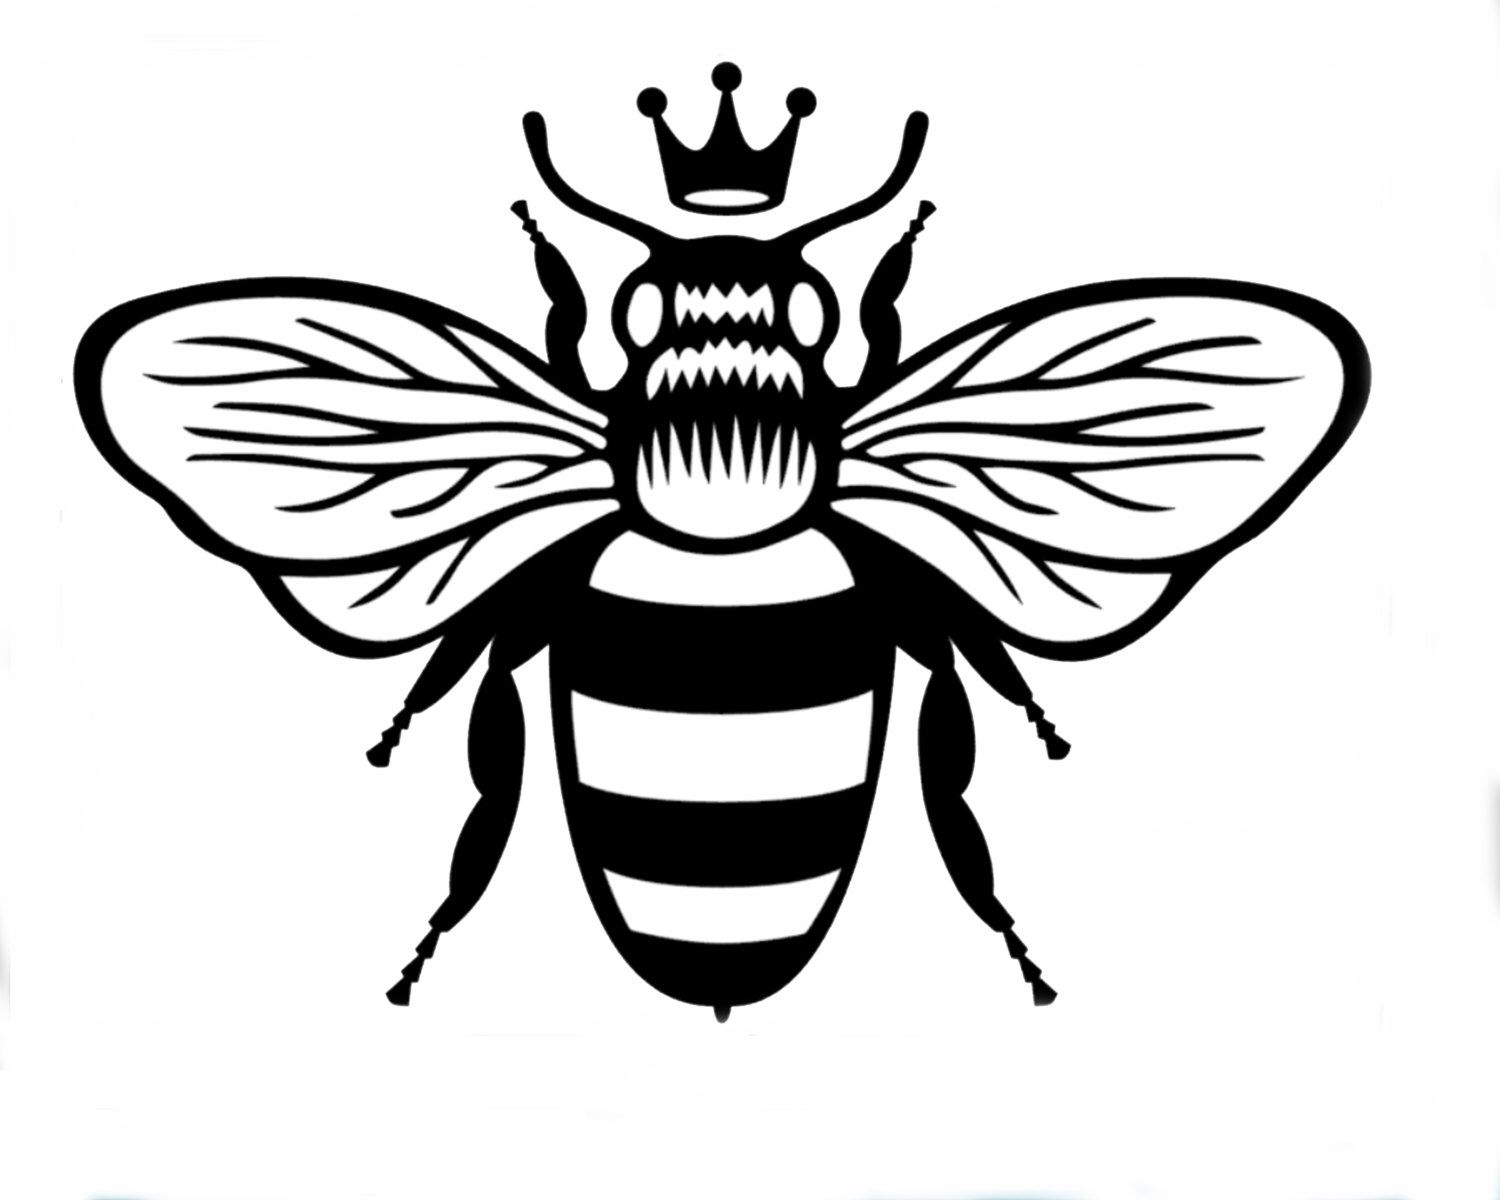 Queen Bee Vinyl Sticker